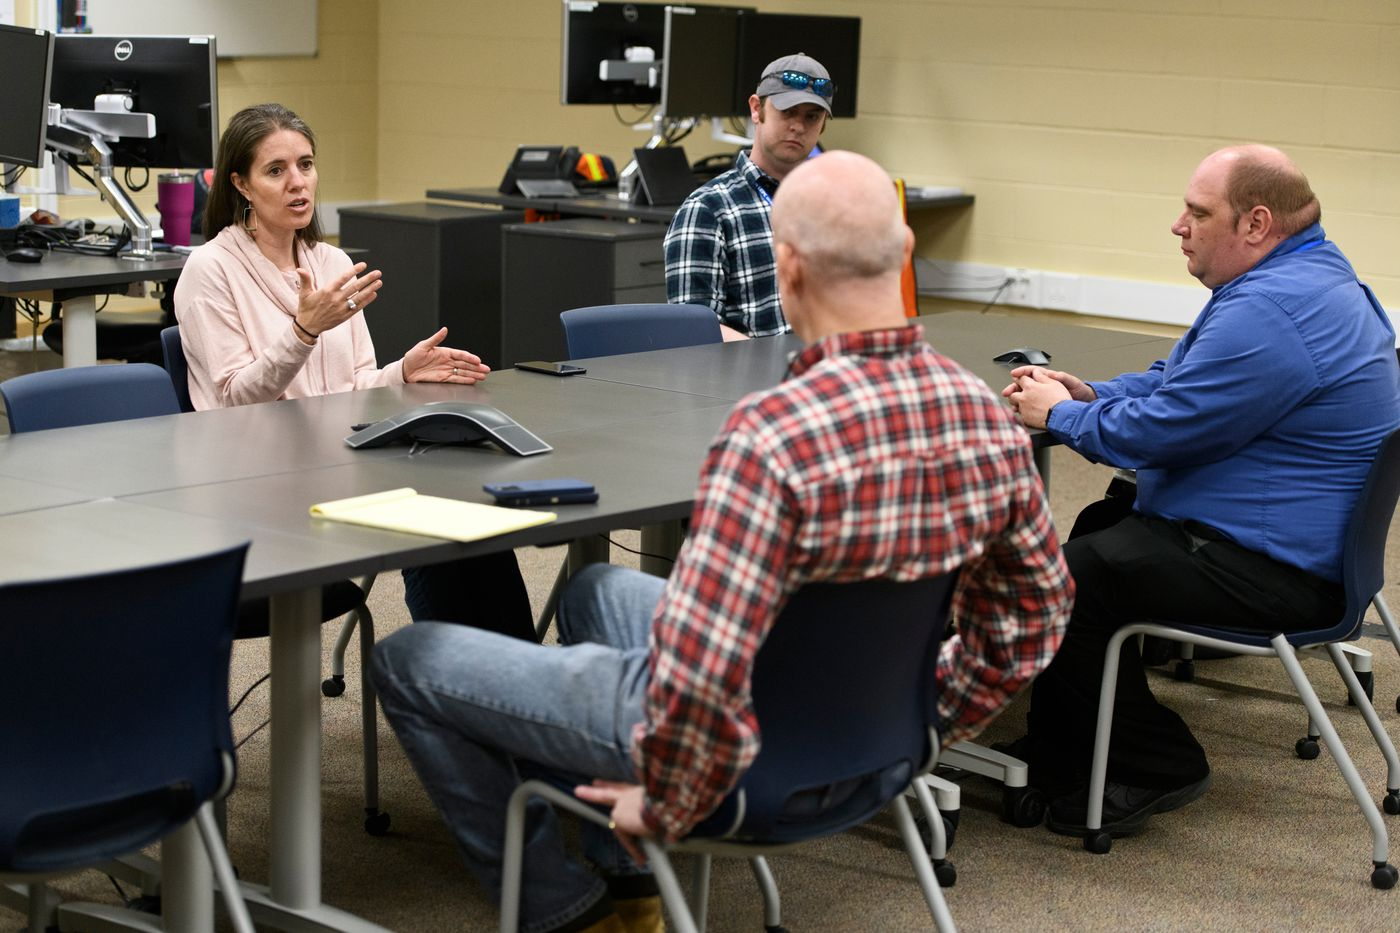 Alaska Chief Medical Officer Anne Zink, left, speaks with Bud Sexton, center, and Dan Nelson, right, at the Kenai Peninsula Borough's Emergency Response Center in Soldotna. (Marc Lester / ADN)